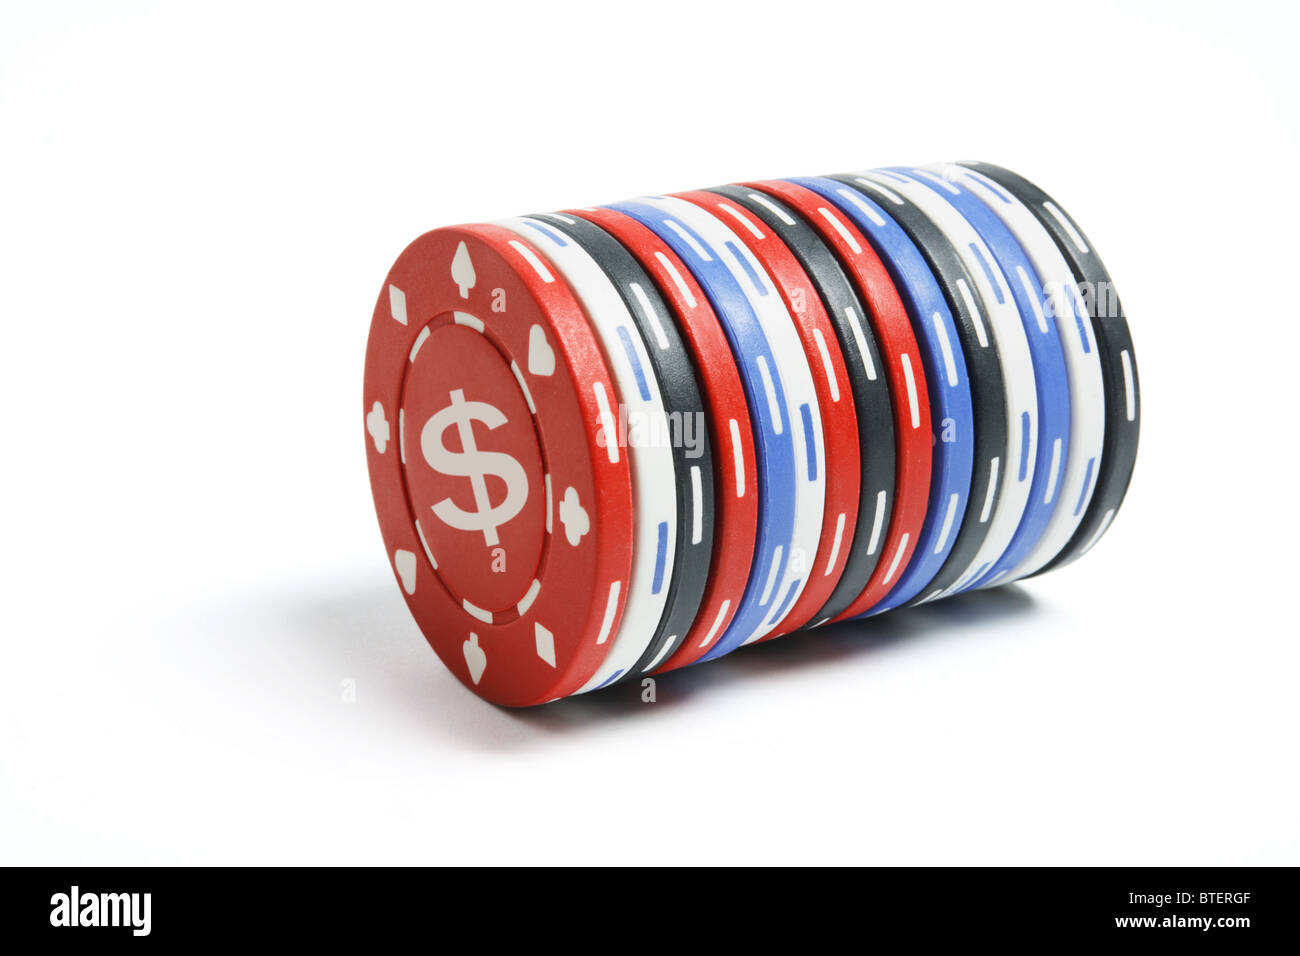 poker chips stapel